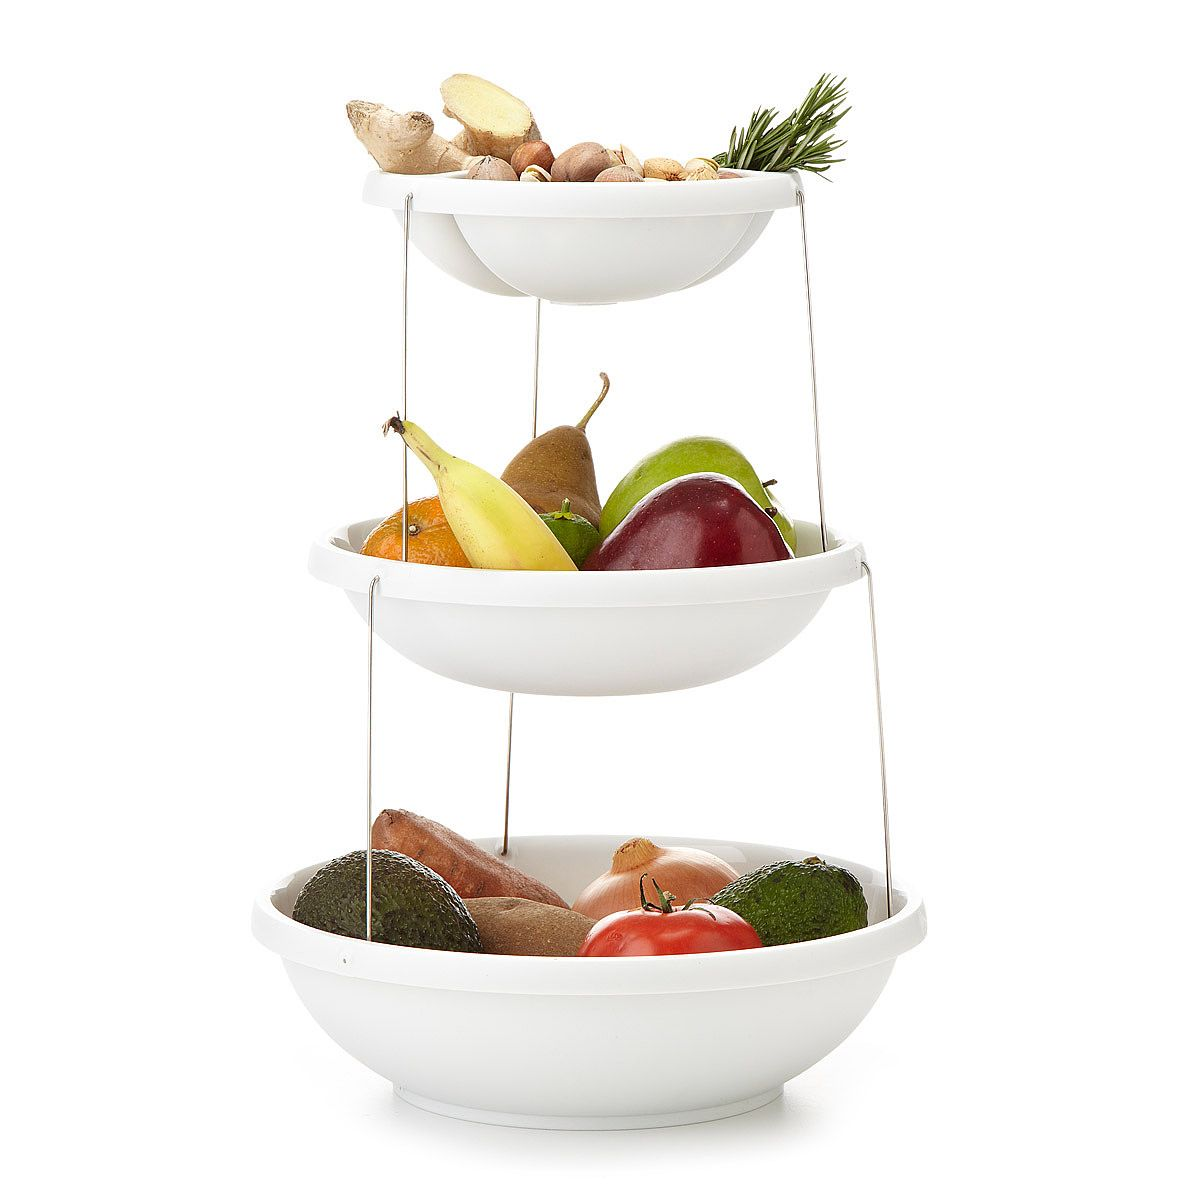 Twist Fold 3 Tiered Bowl | Apartment kitchen, Nest and Bowls